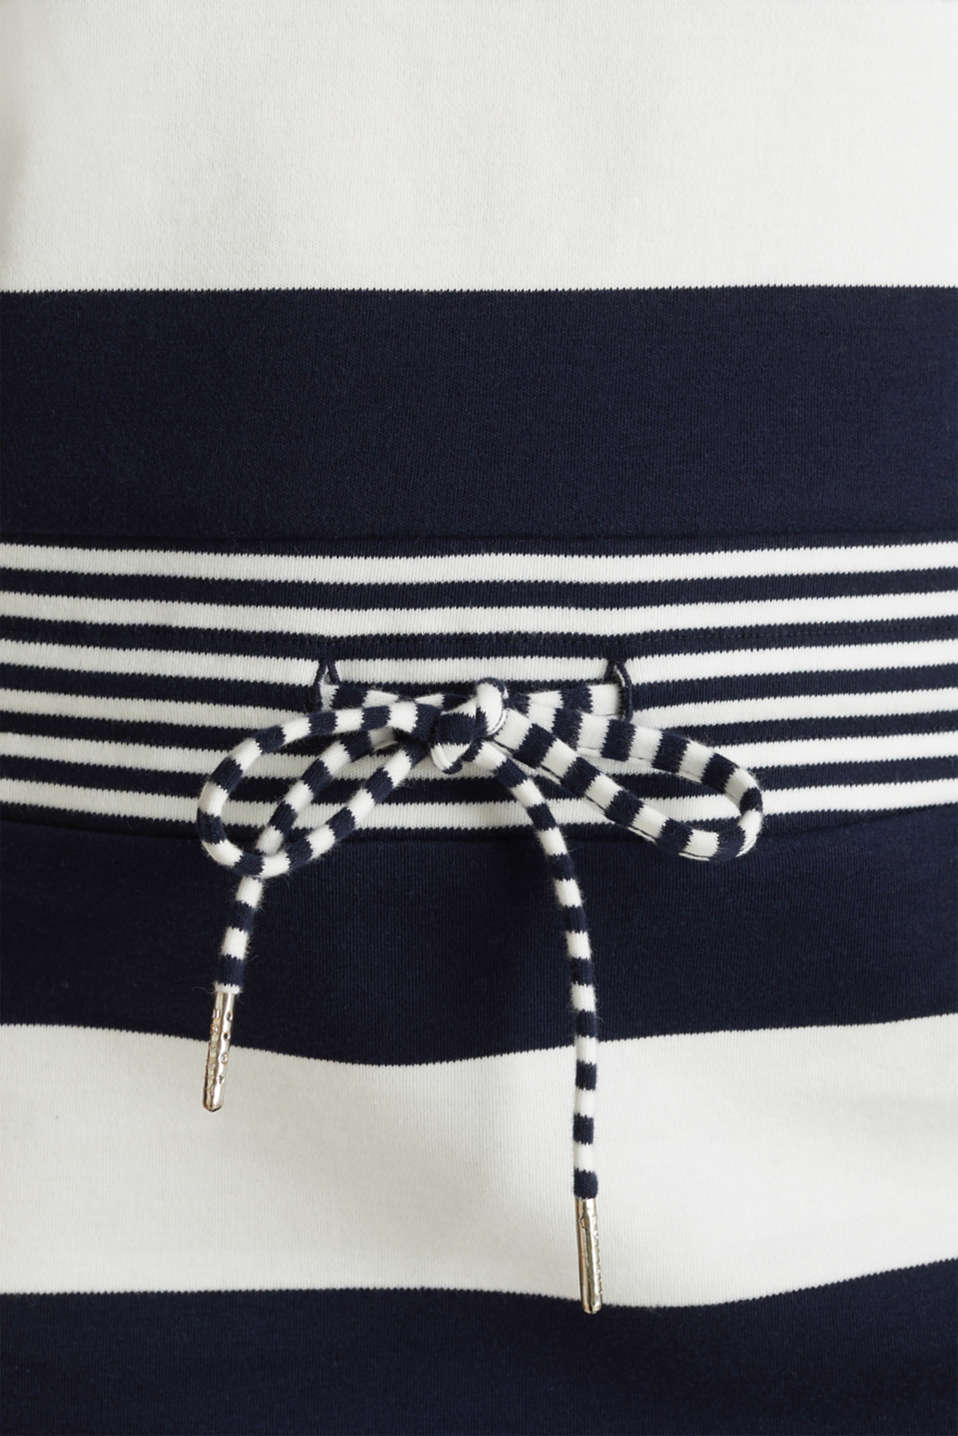 Jersey dress with stripes, 100% cotton, NAVY, detail image number 4